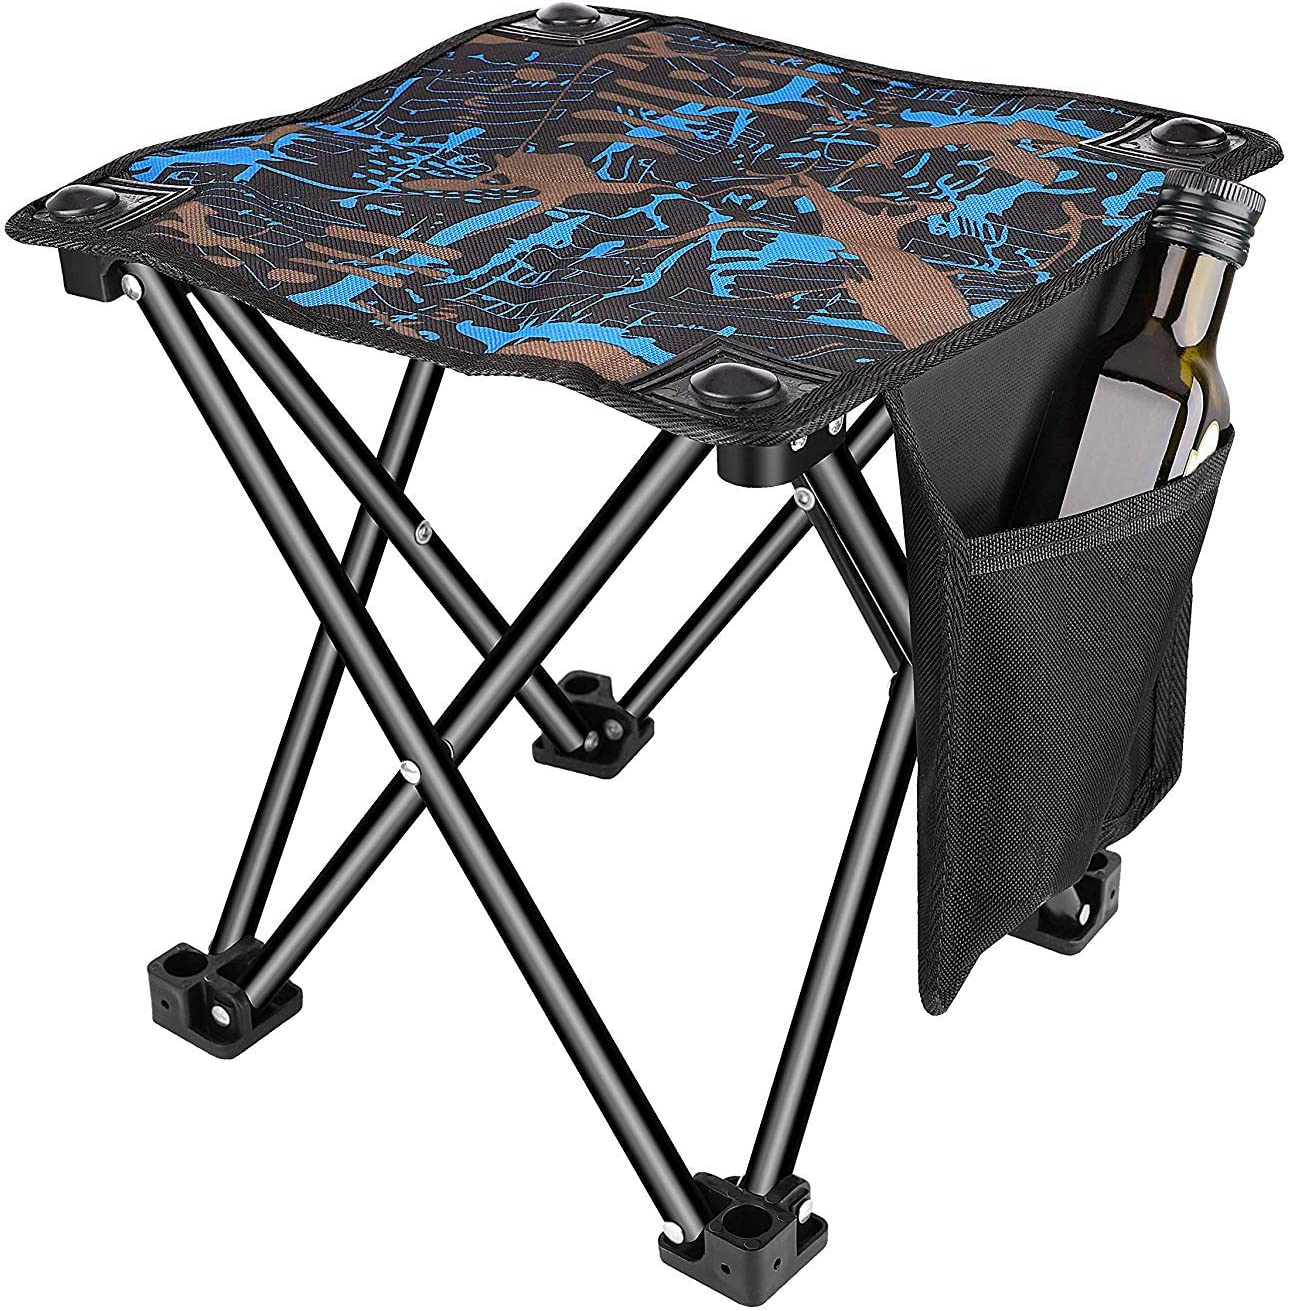 600D Oxford Cloth Portable Foldable Stool Chair Seat Outdoor Camping Fishing